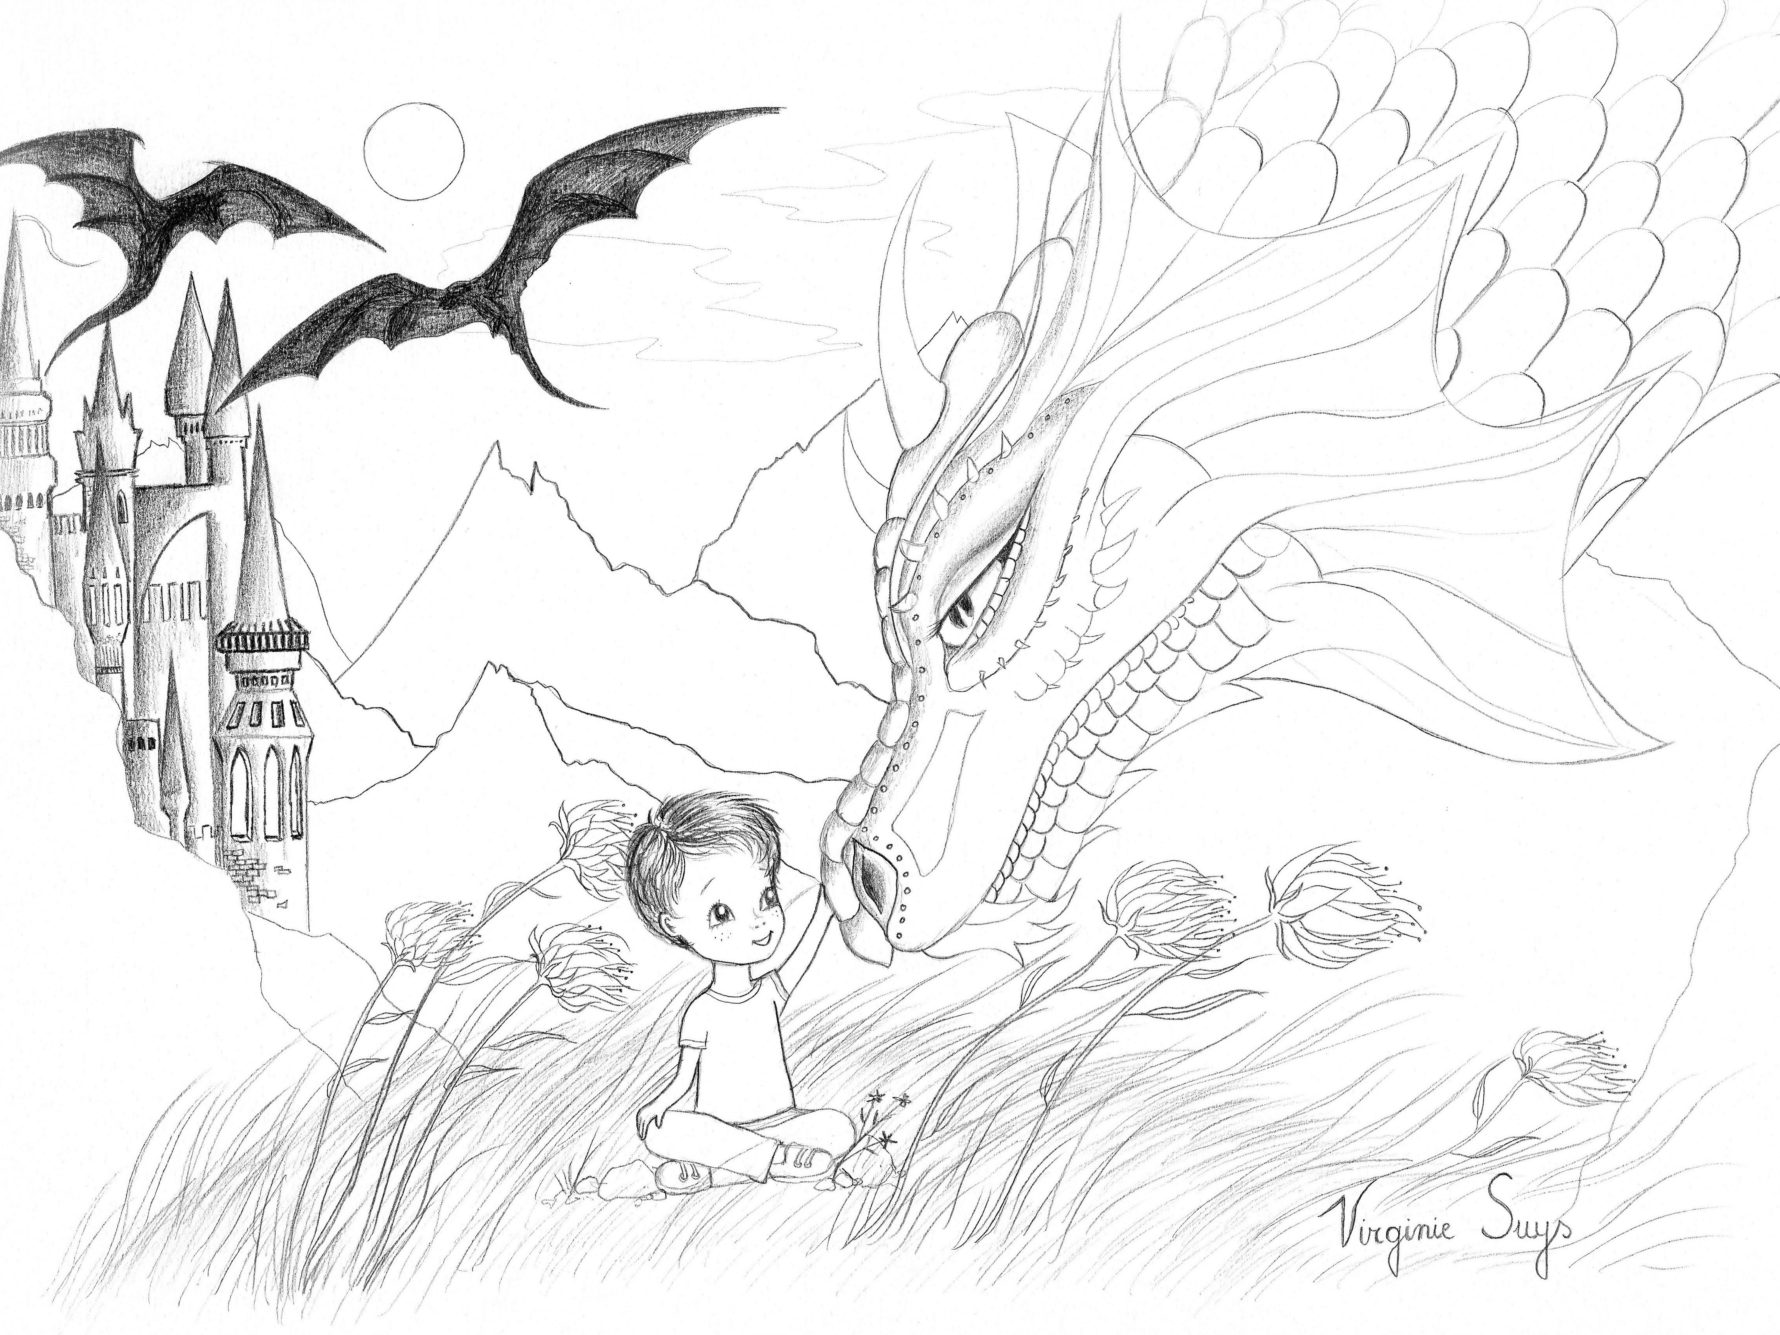 Virginie Suys Dragonboy in black & white illustration